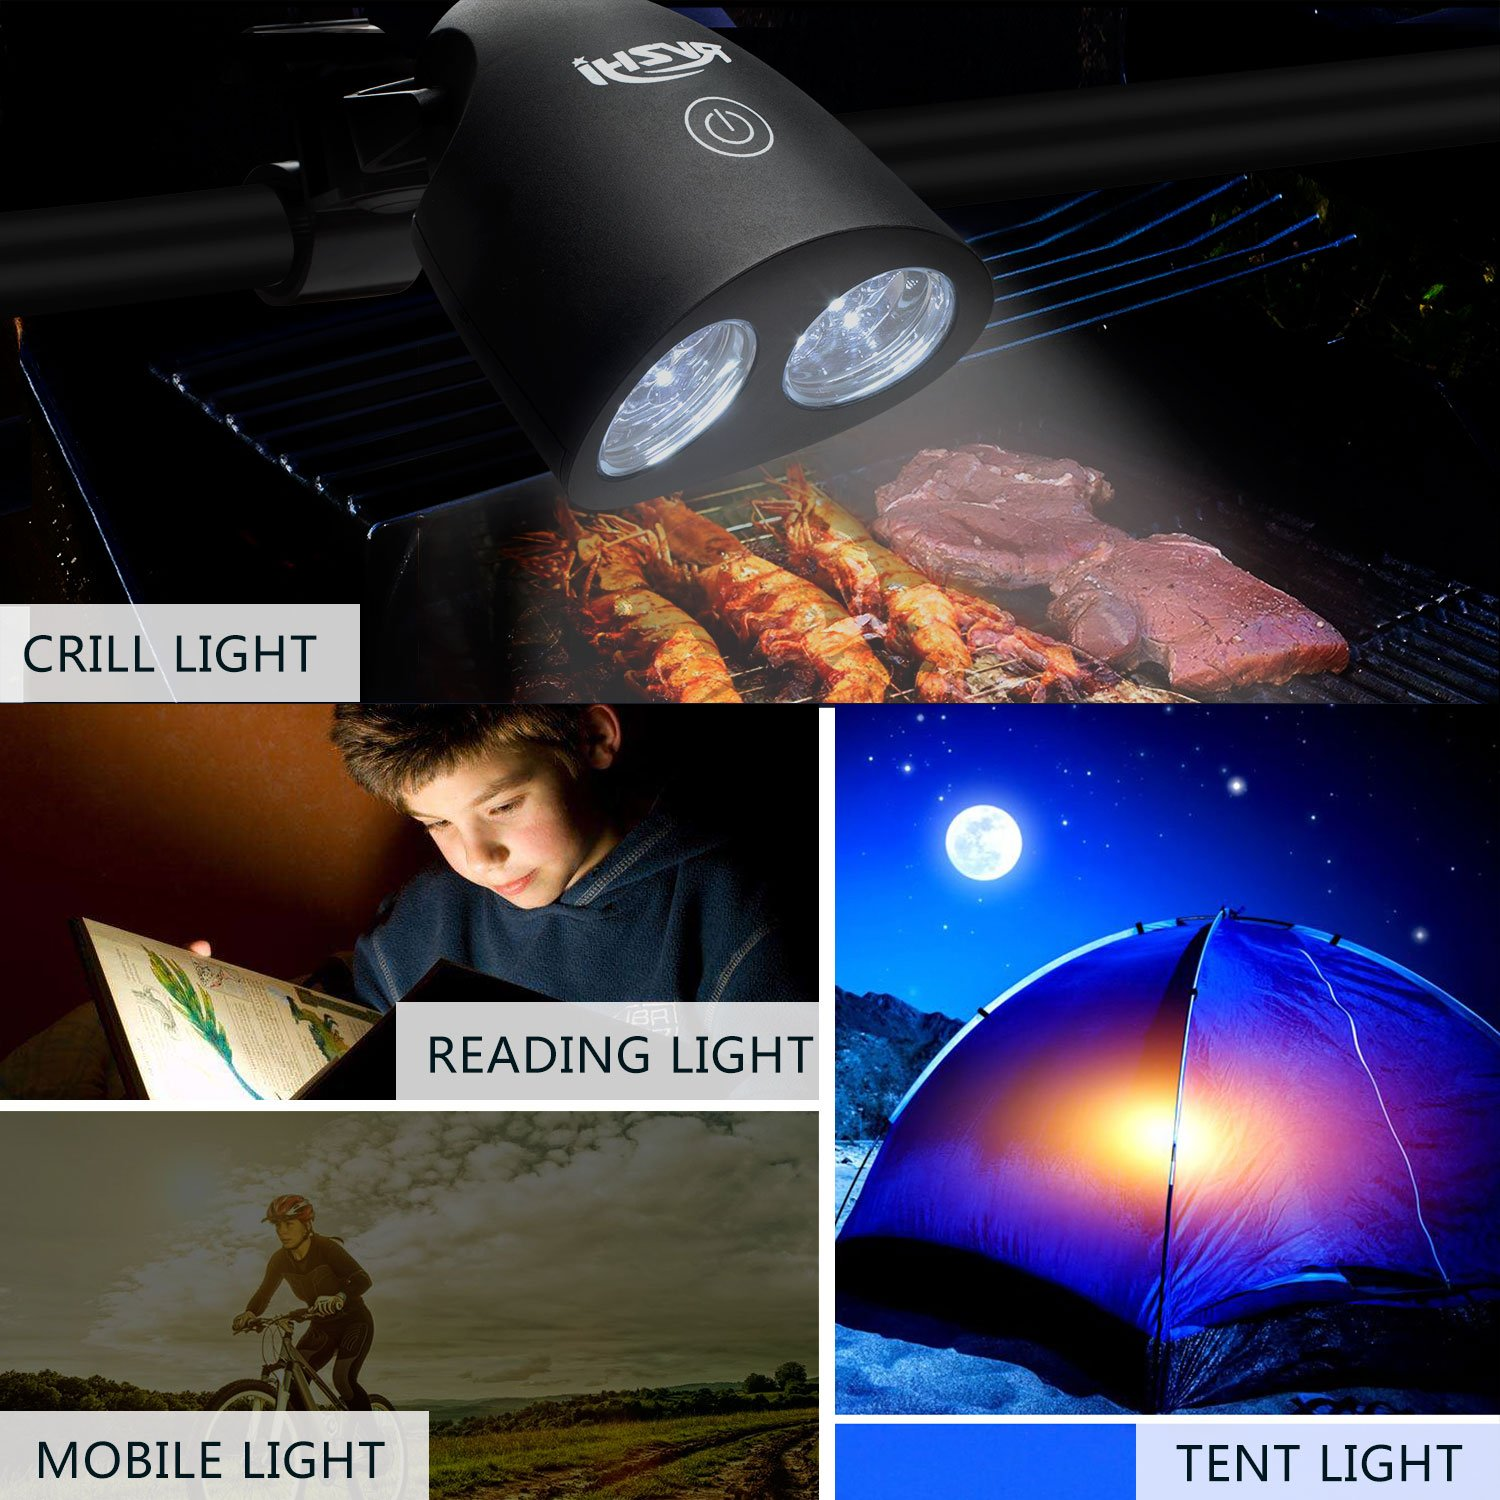 Barbecue Grill Light, RVZHI 360°Rotation Grill Lights for BBQ With 10 Super Bright LED Lights- Durable,Heat Resistant,Waterproof,100lm LED BBQ Light for Gas/Charcoal/Electric Grill-Battery Not Include by RVZHI (Image #6)